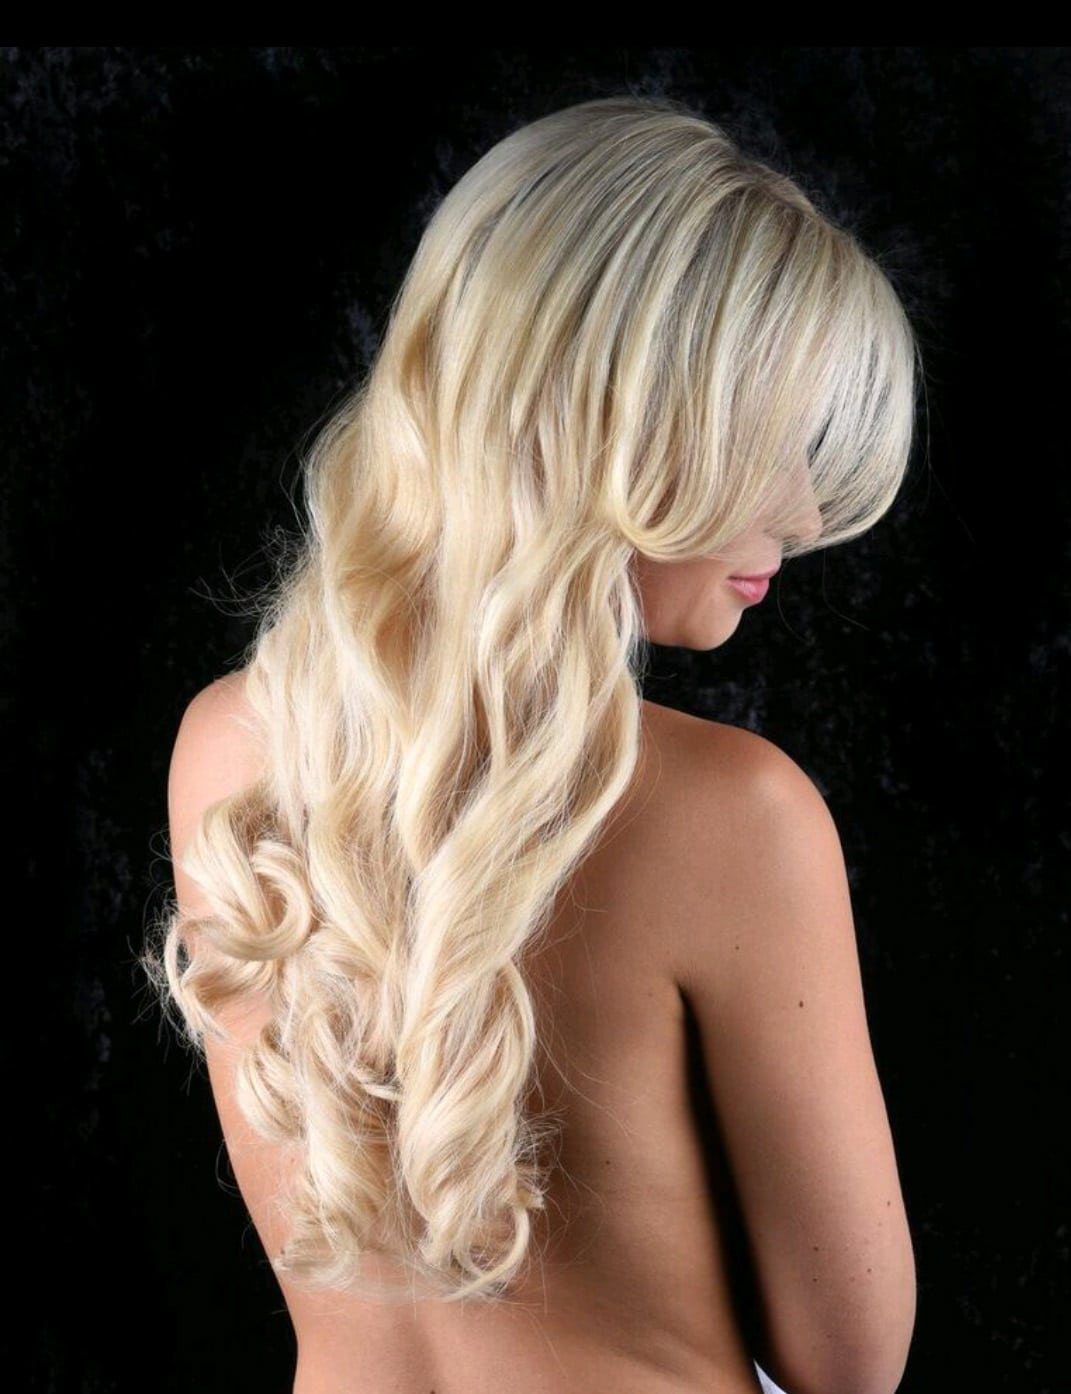 Elegance Collection - Long Curls